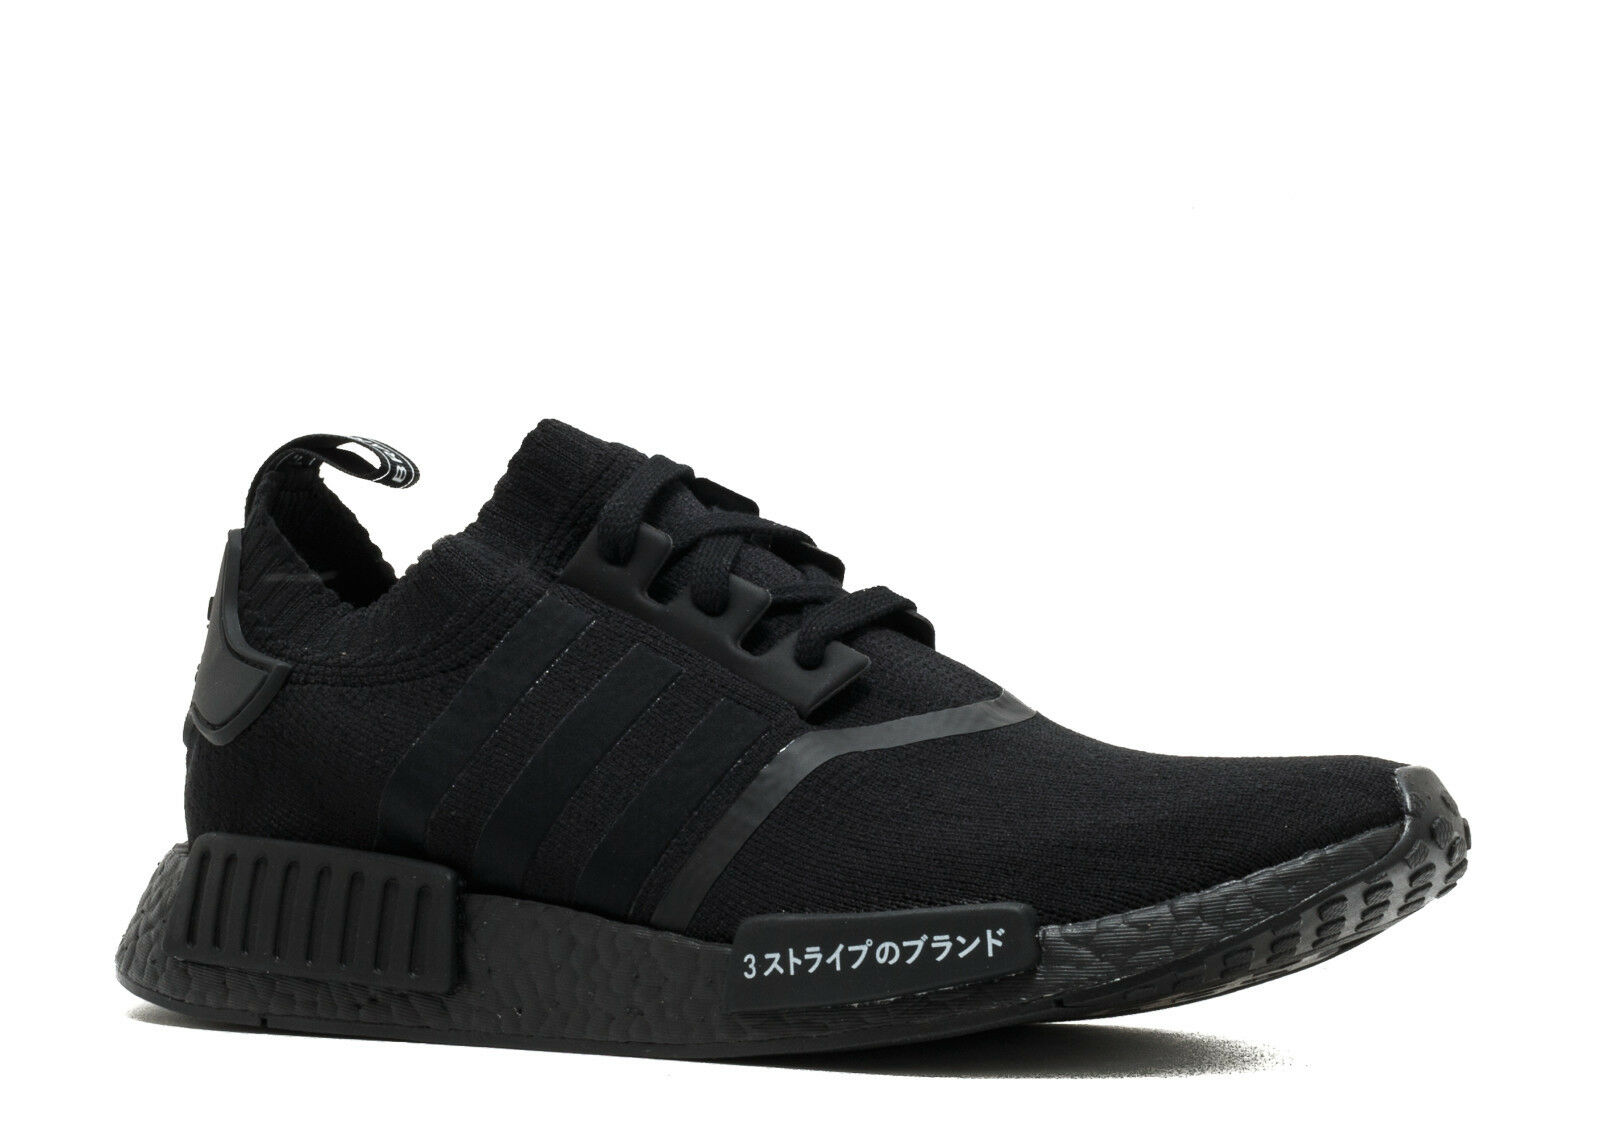 Nmd R1 Pk 'Japan Boost' - Bz0220 - Size 8